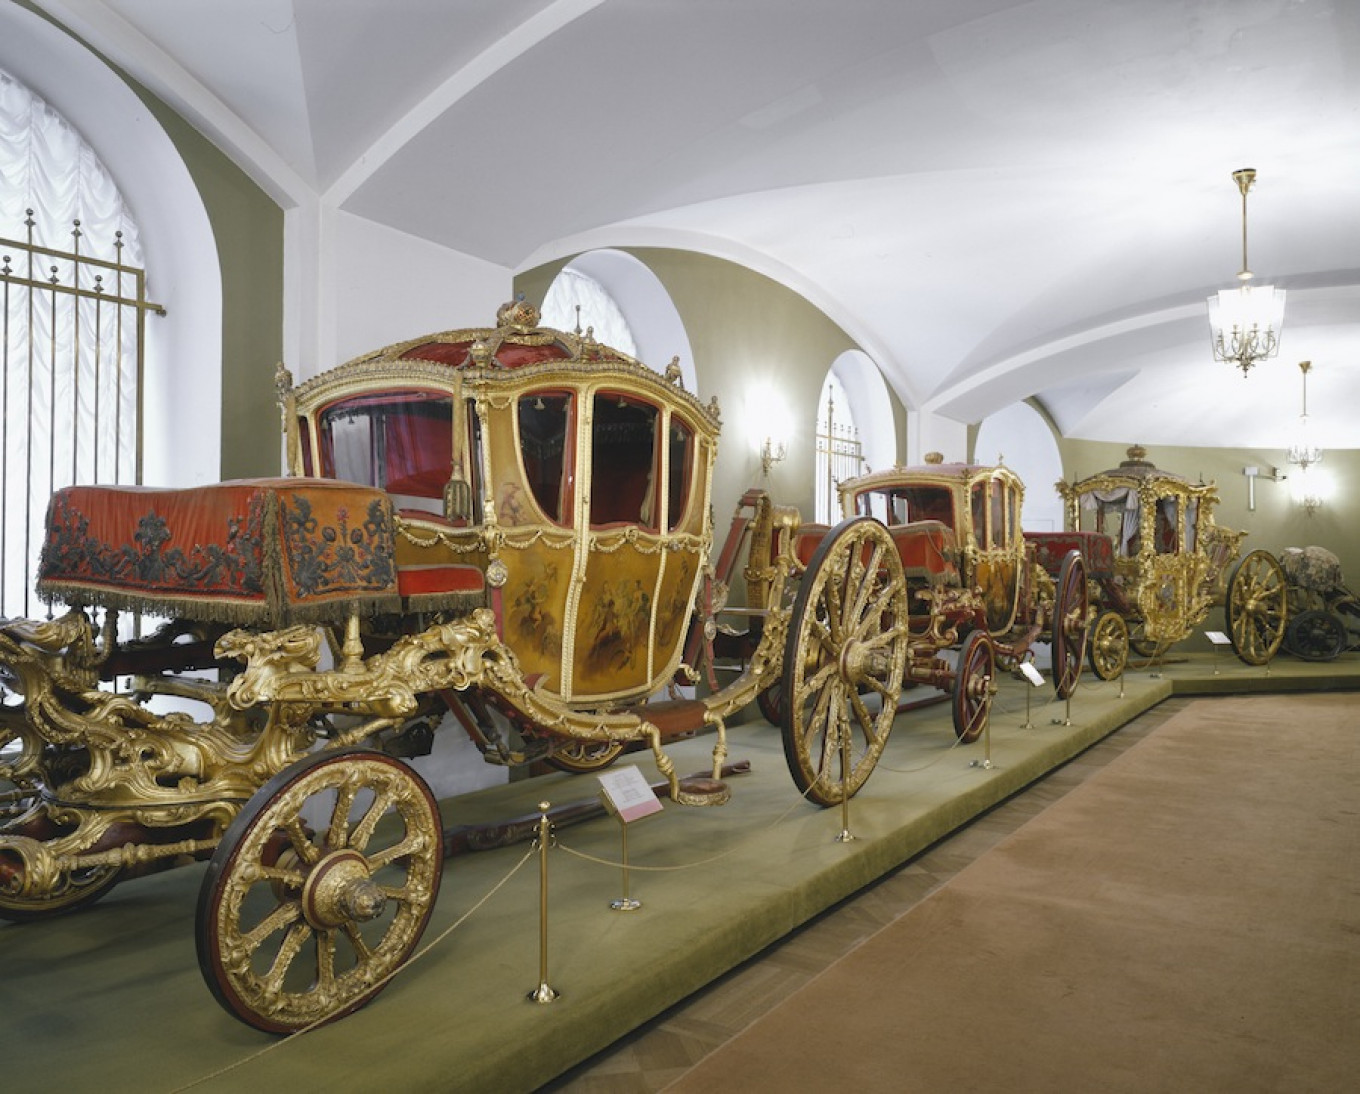 An exhibit from Catherine the Great's private collection of carriages presented to her from European leaders around the world. 				 				Kremlin Museum